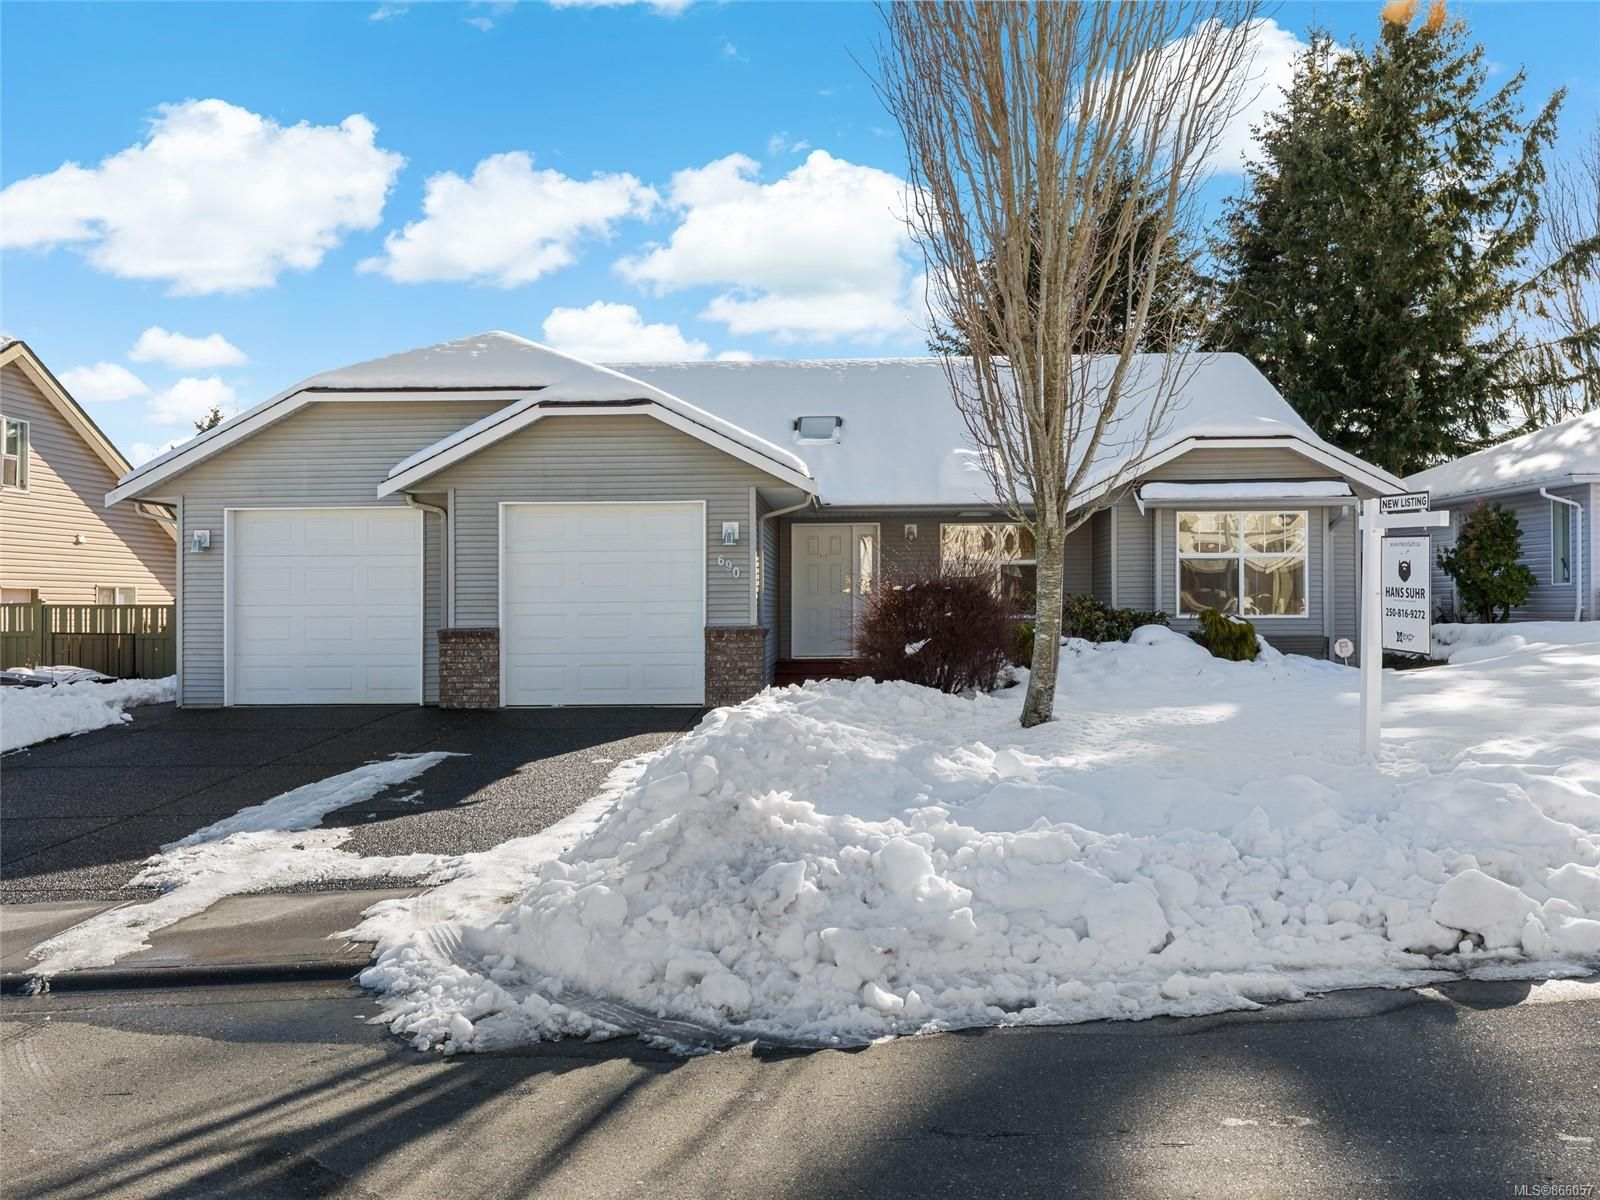 Main Photo: 690 Moralee Dr in : CV Comox (Town of) House for sale (Comox Valley)  : MLS®# 866057